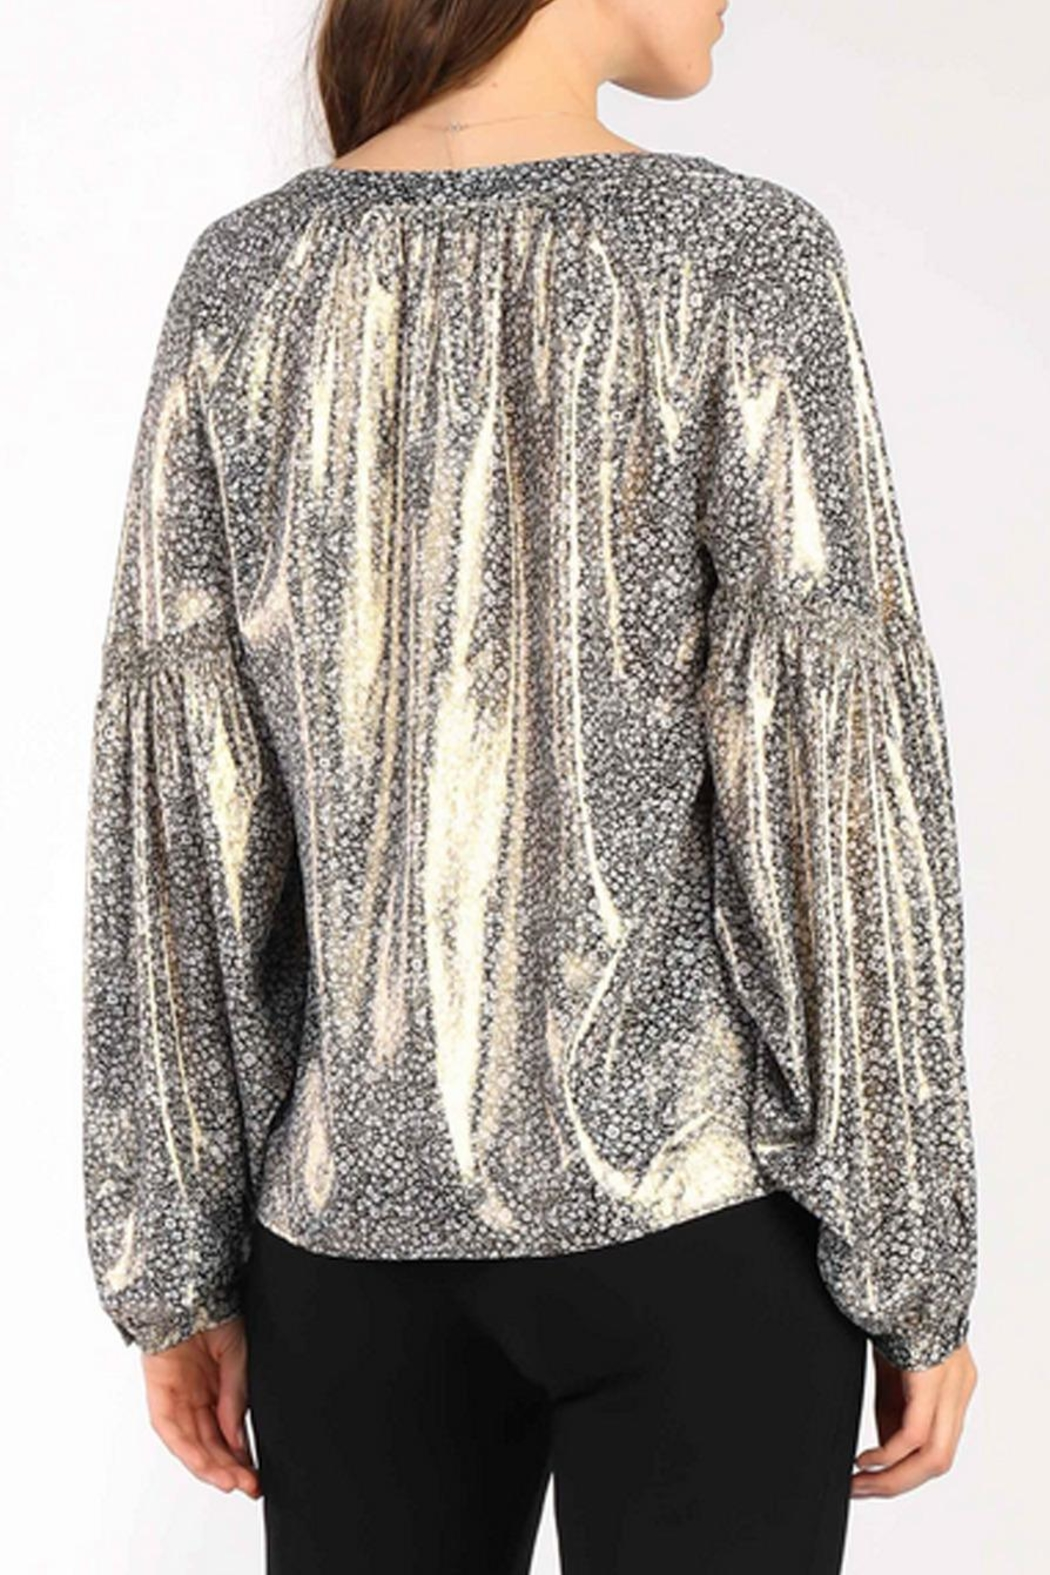 Current Air Floral Shimmer Blouse - Side Cropped Image